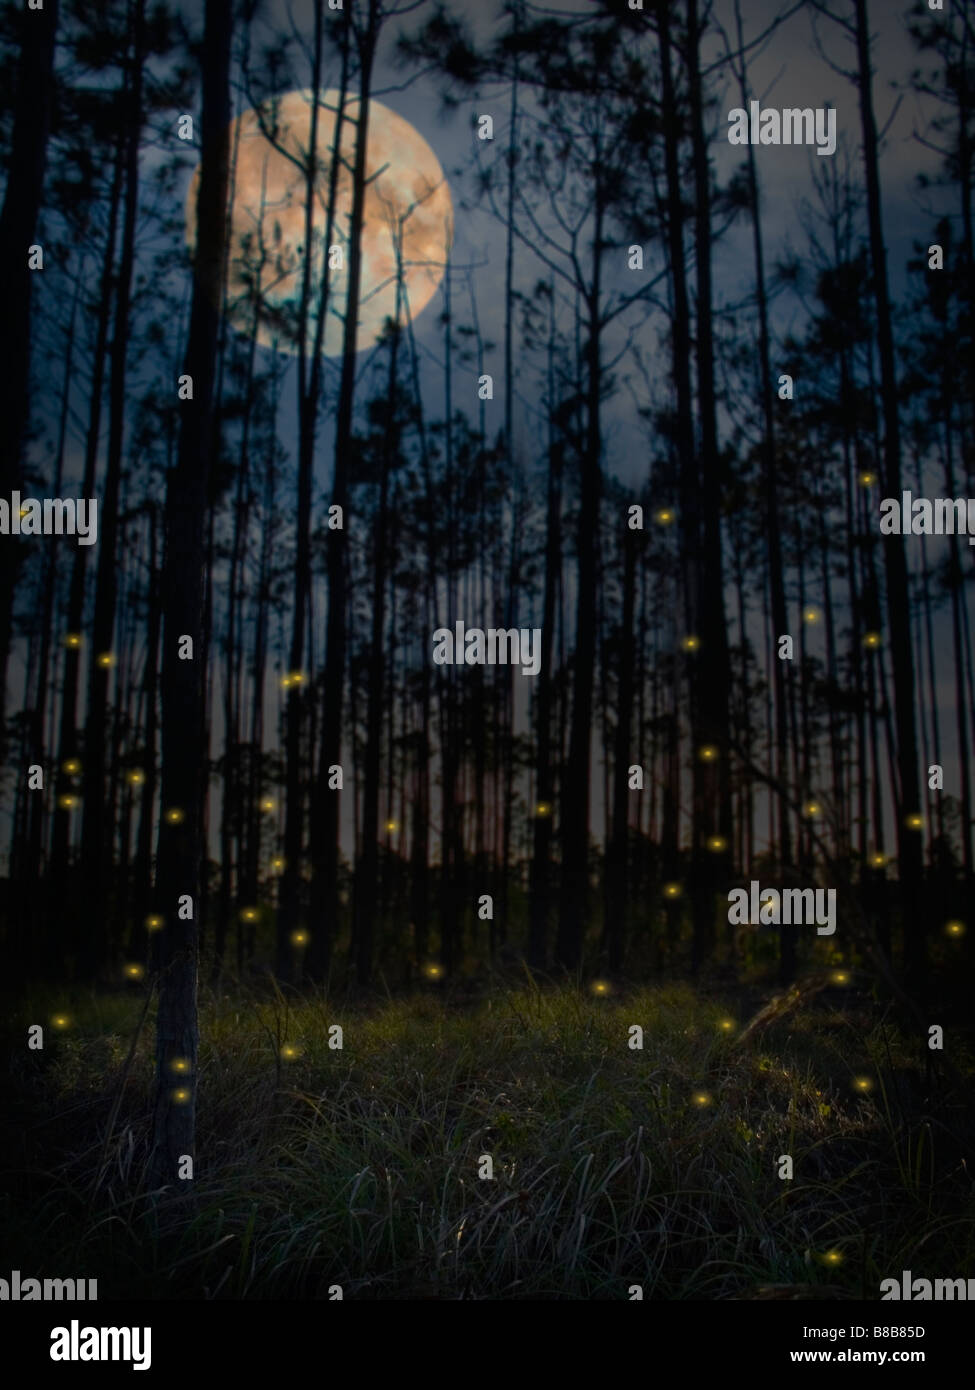 Group of fireflies in a forest - Stock Image